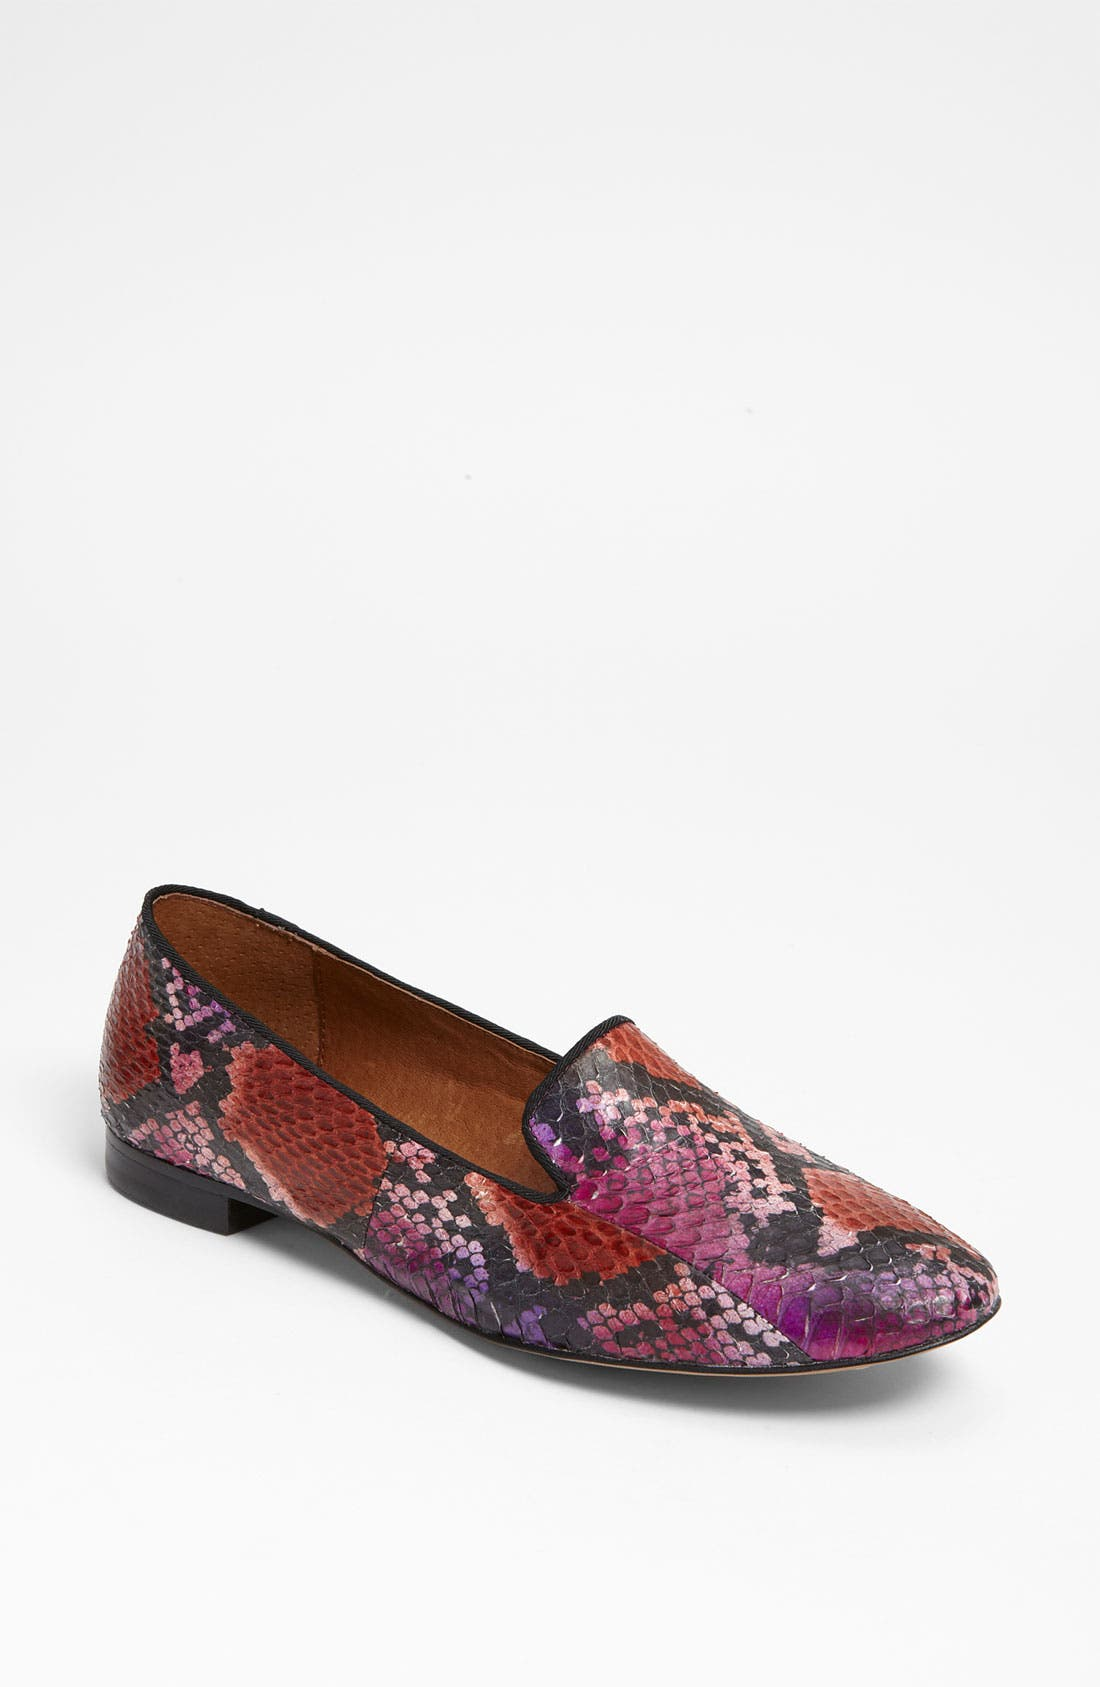 Alternate Image 1 Selected - Sam Edelman 'Alvin' Flat